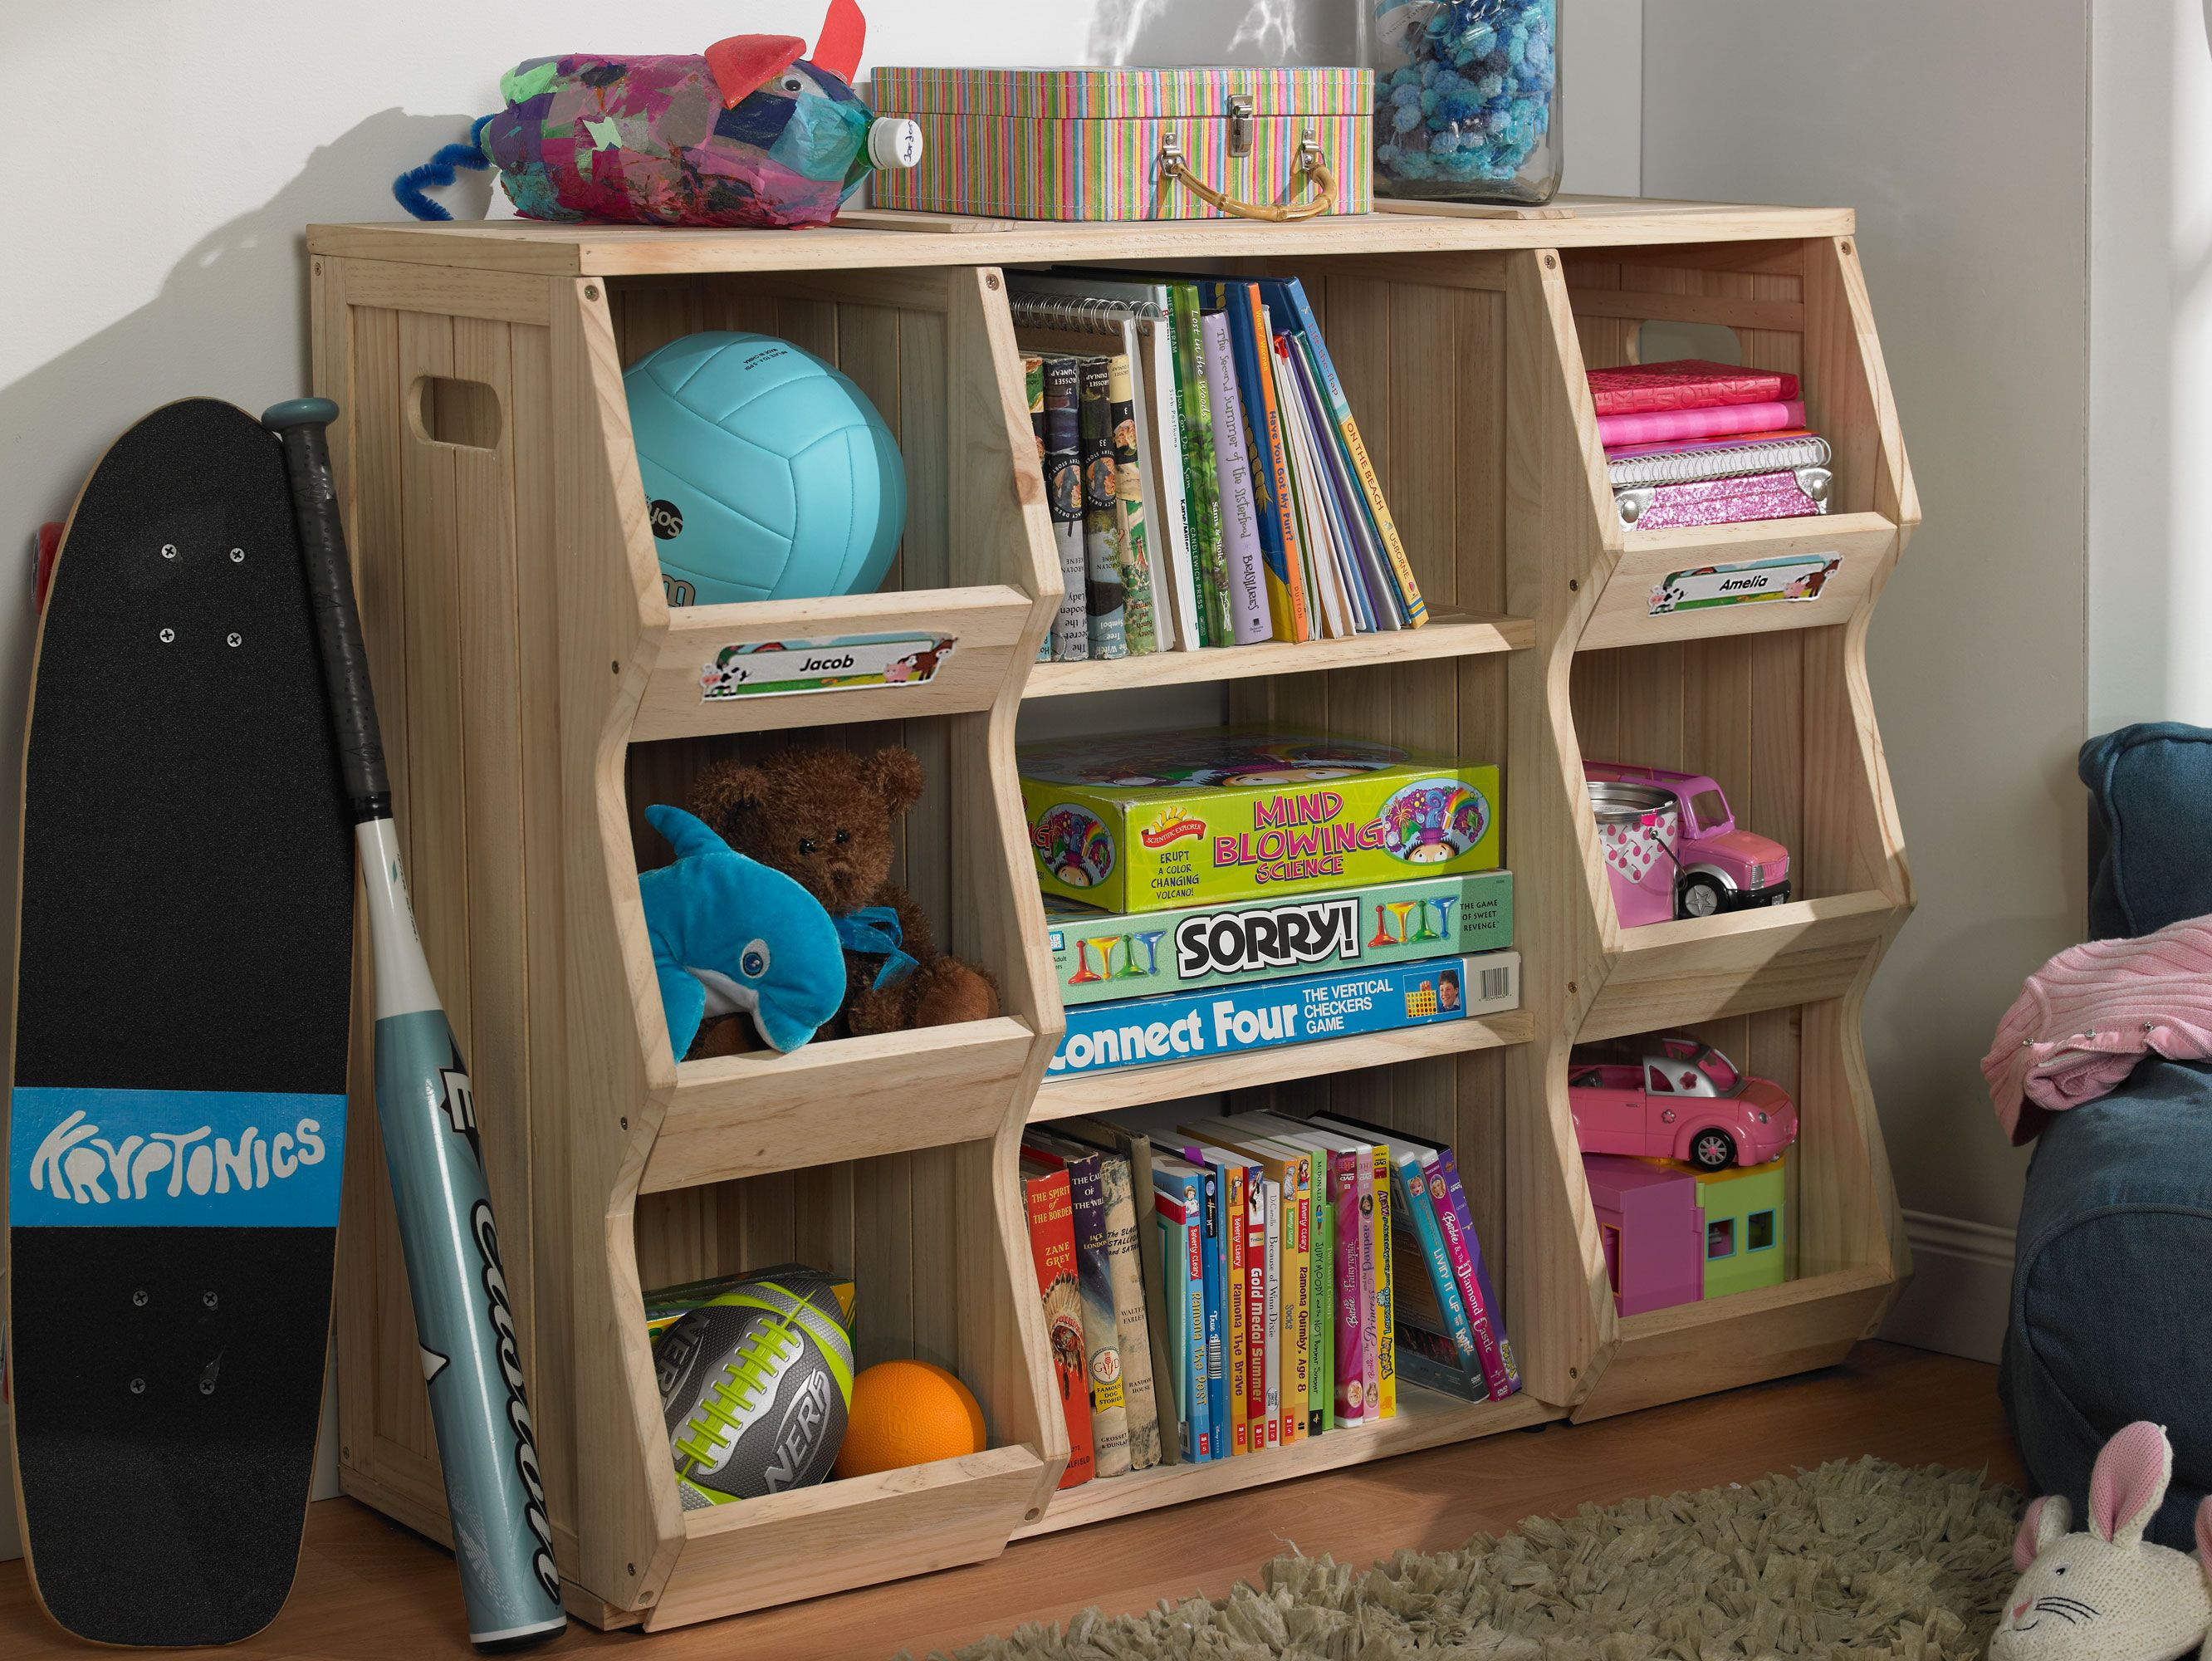 Book Shelf And Toy Storage Img On Gwiddlehost & Toy Storage And Bookcase Unit | Credainatcon.com